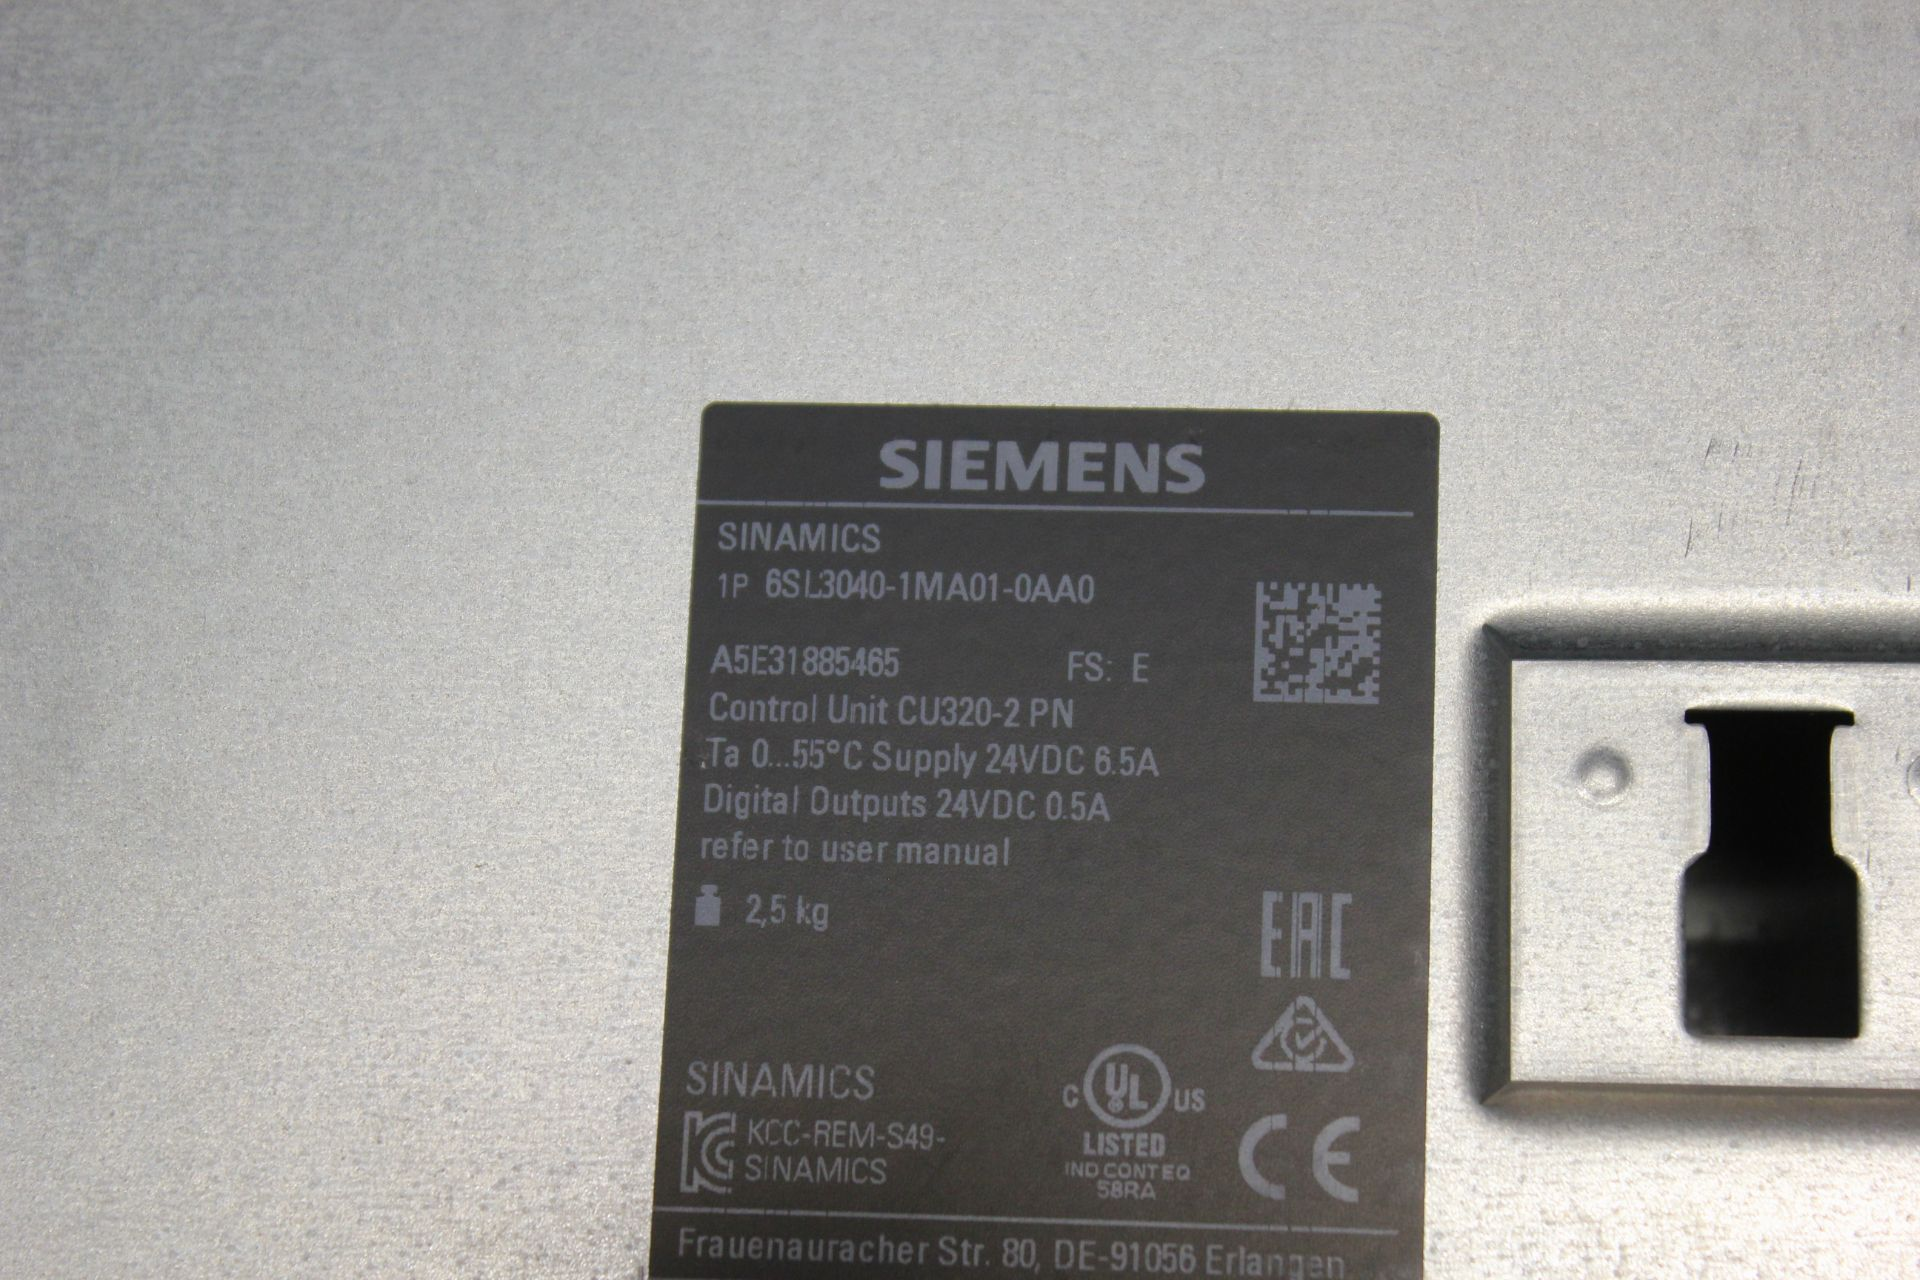 NEW SIEMENS SINAMICS FREQUENCY CONVERTER CONTROL UNIT - Image 5 of 6